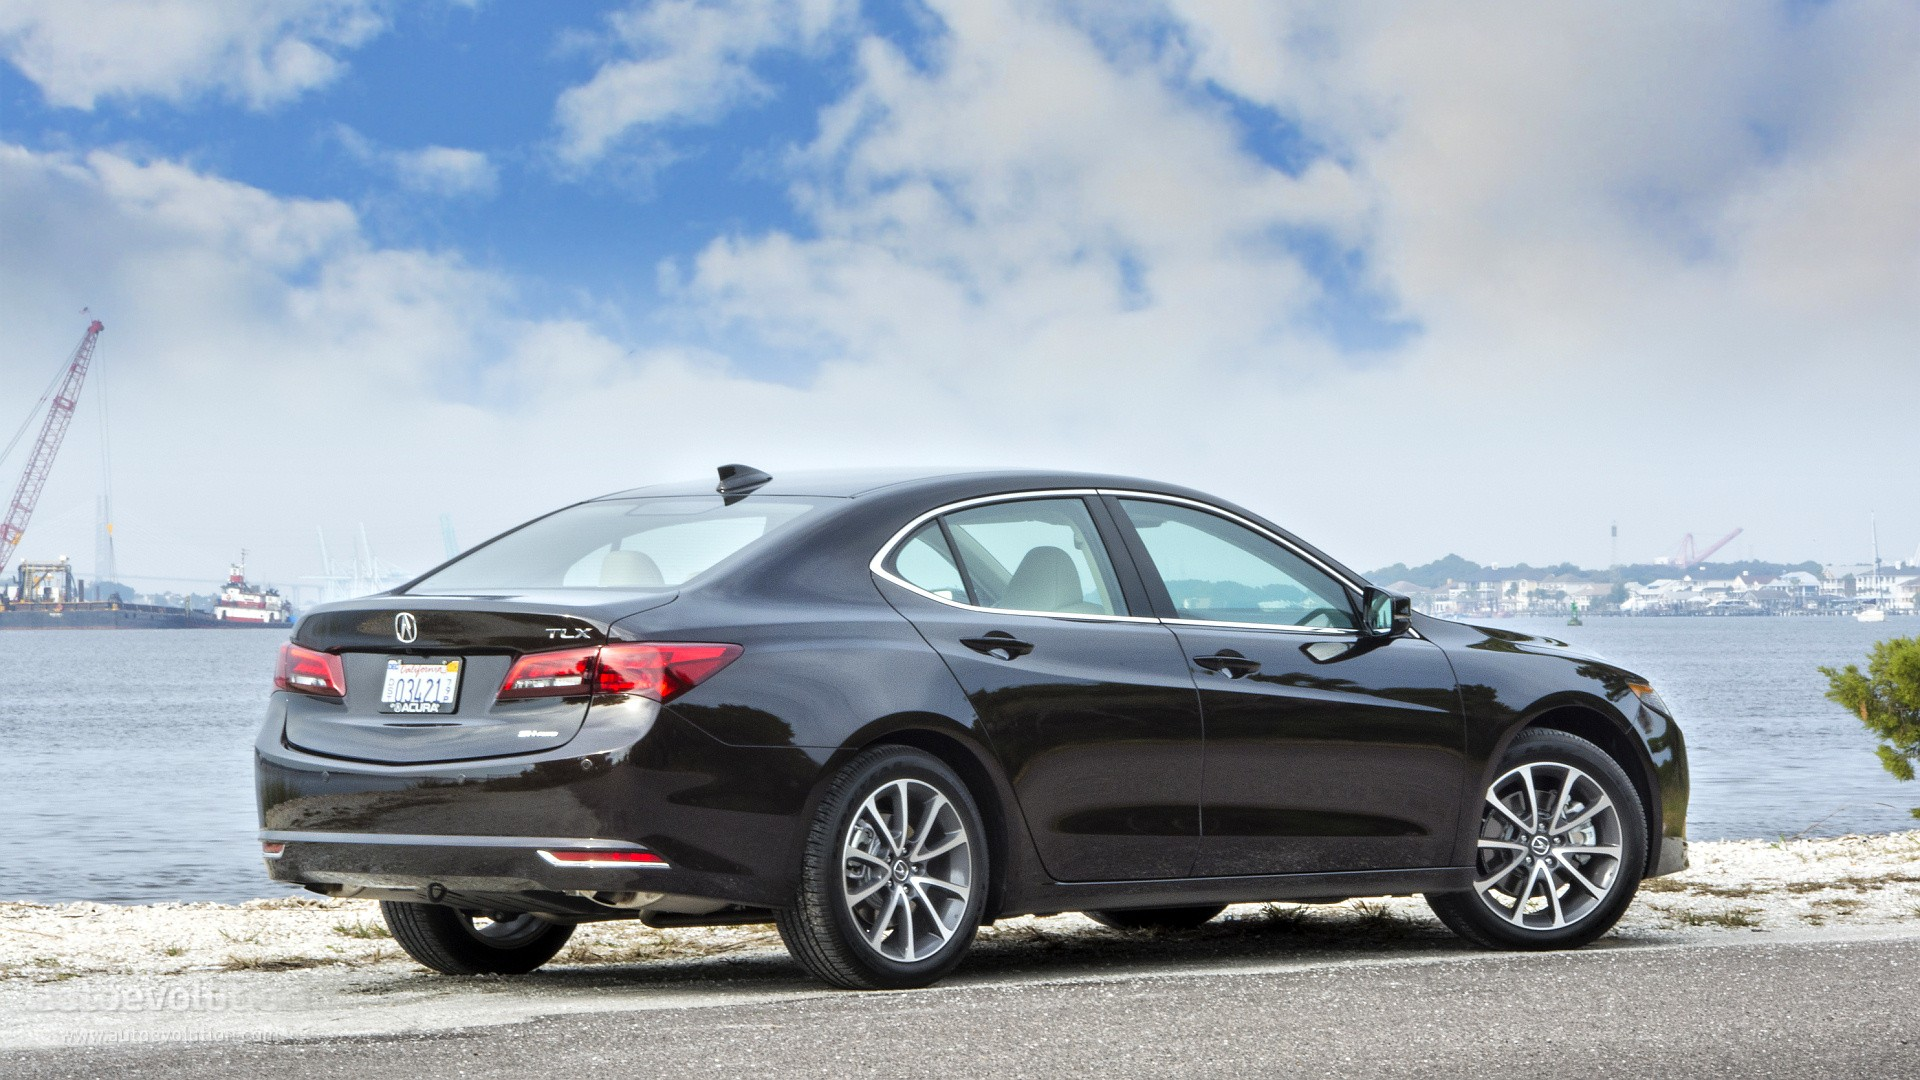 2015 Acura TLX Review - autoevolution